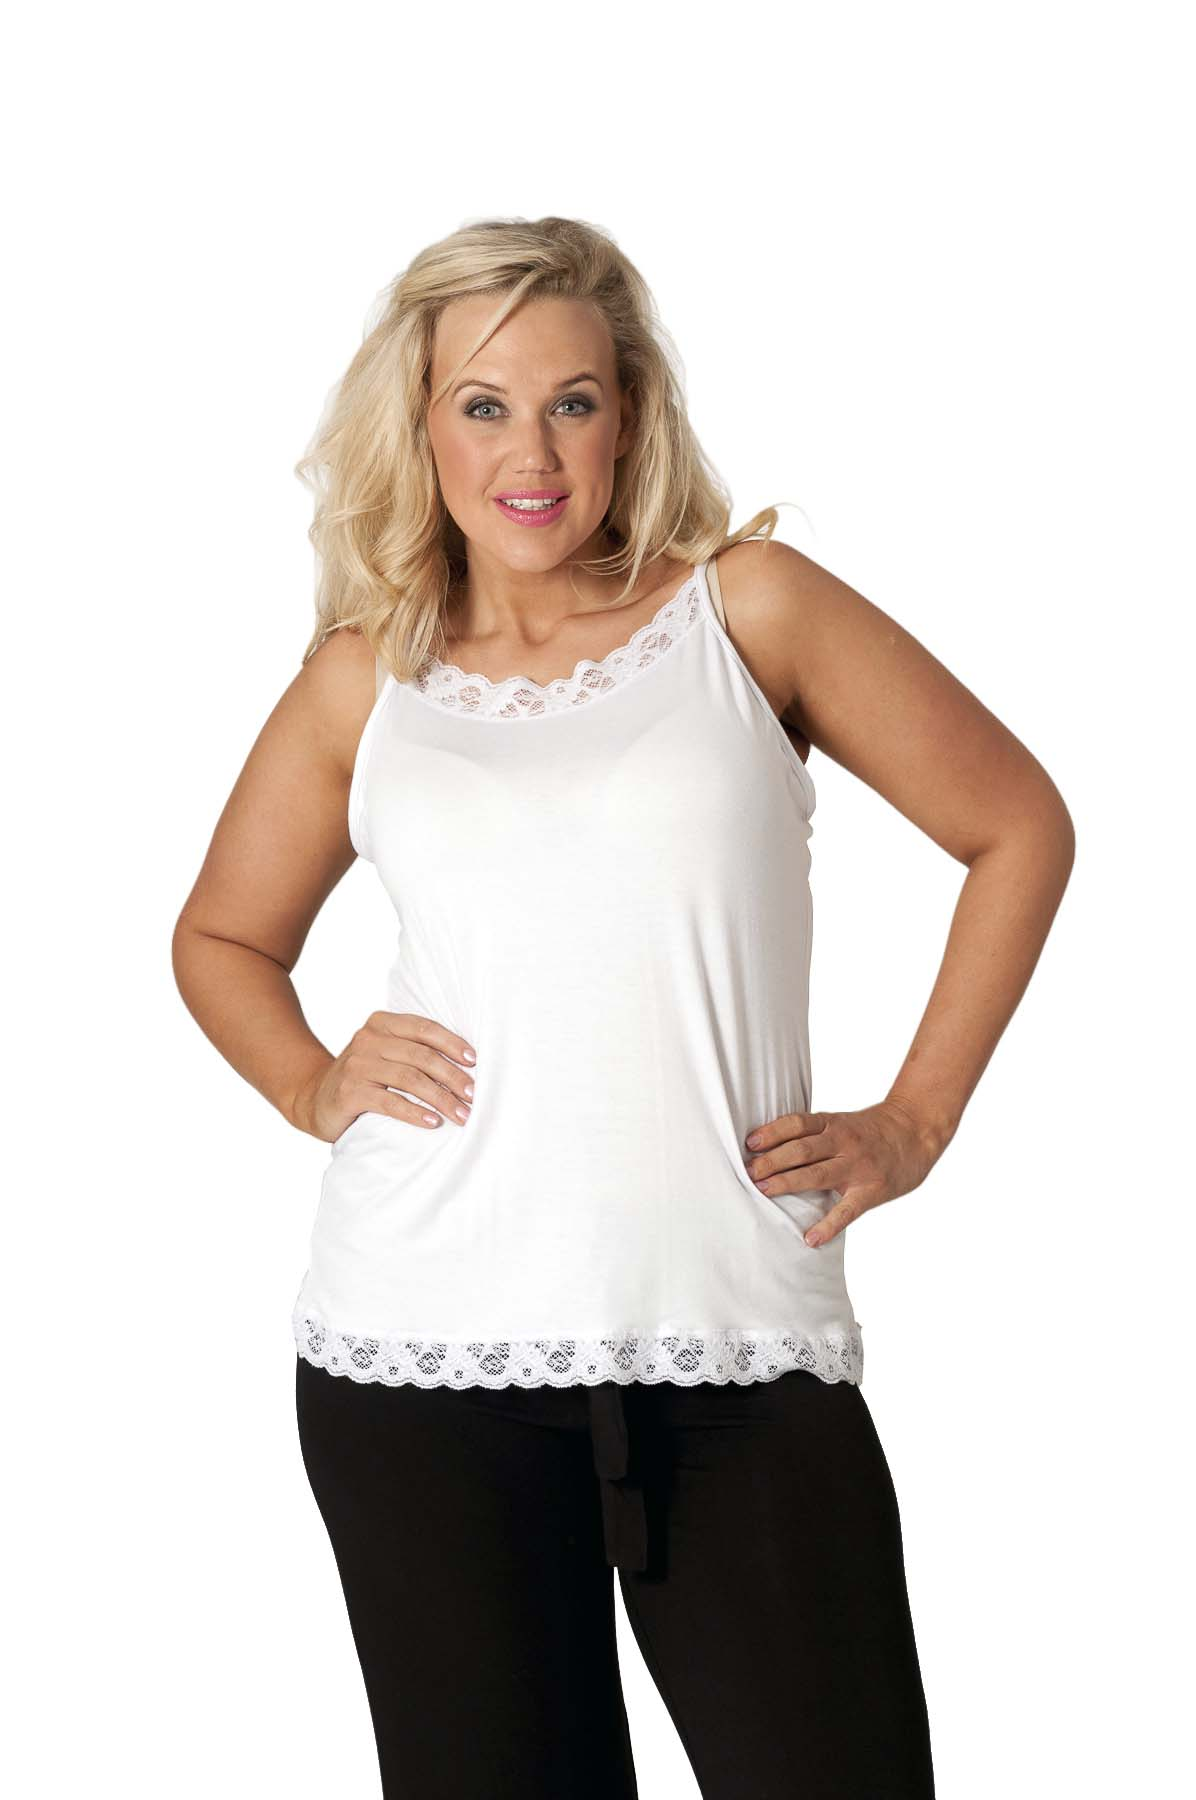 One of our favorite layering tops! Who doesn't love a little bit of lace? This chic lace cami adds a little bit of boho flare to any outfit! 3 colors available: Black, Grey, Oatmeal Sizes: XL/1XL = 12 , 1XL/2XL = 14 .